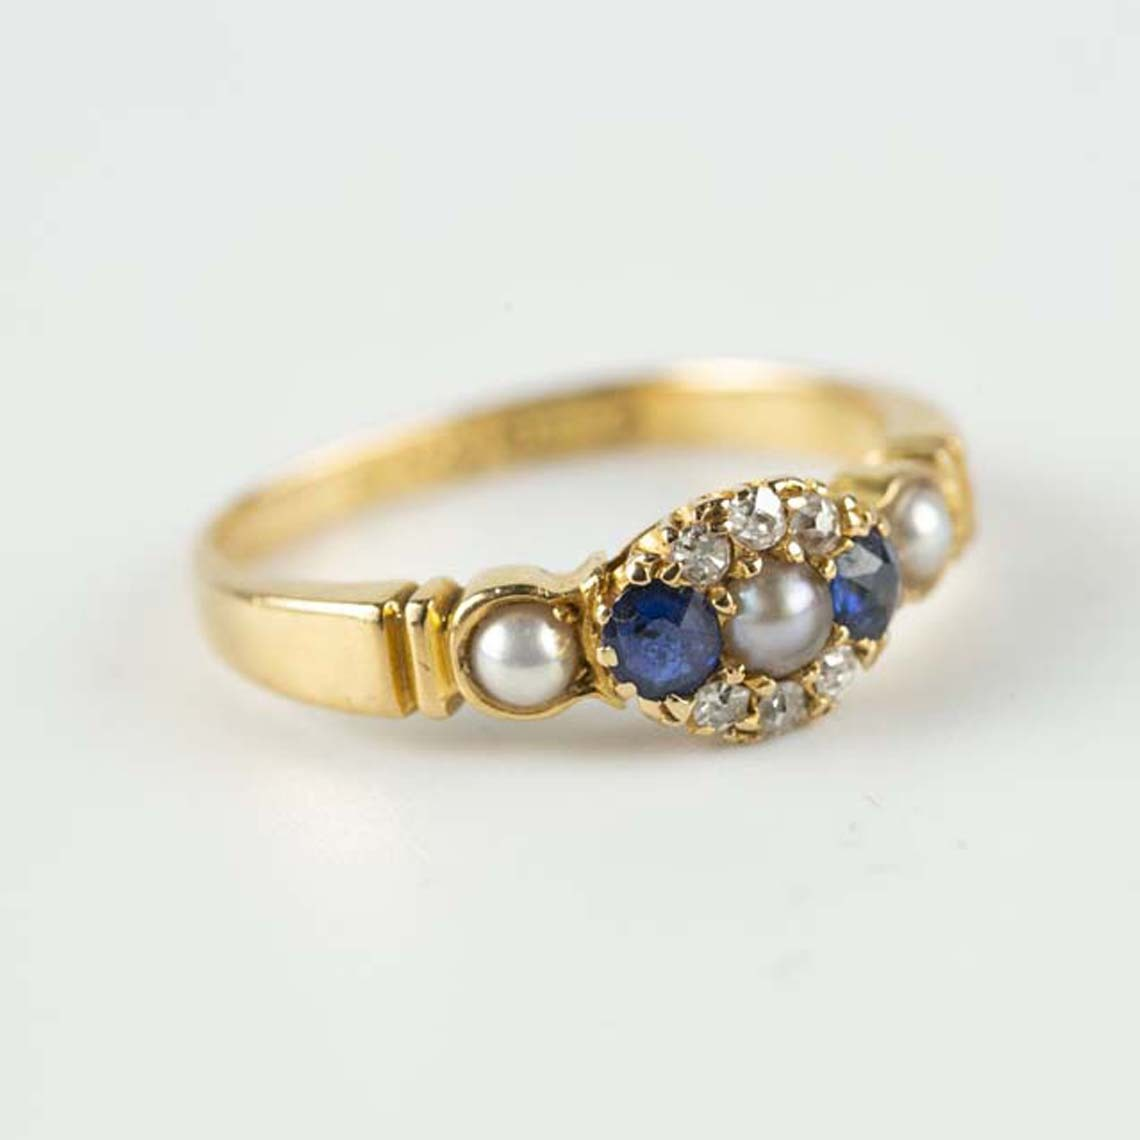 Vintage sapphire and pearl ring